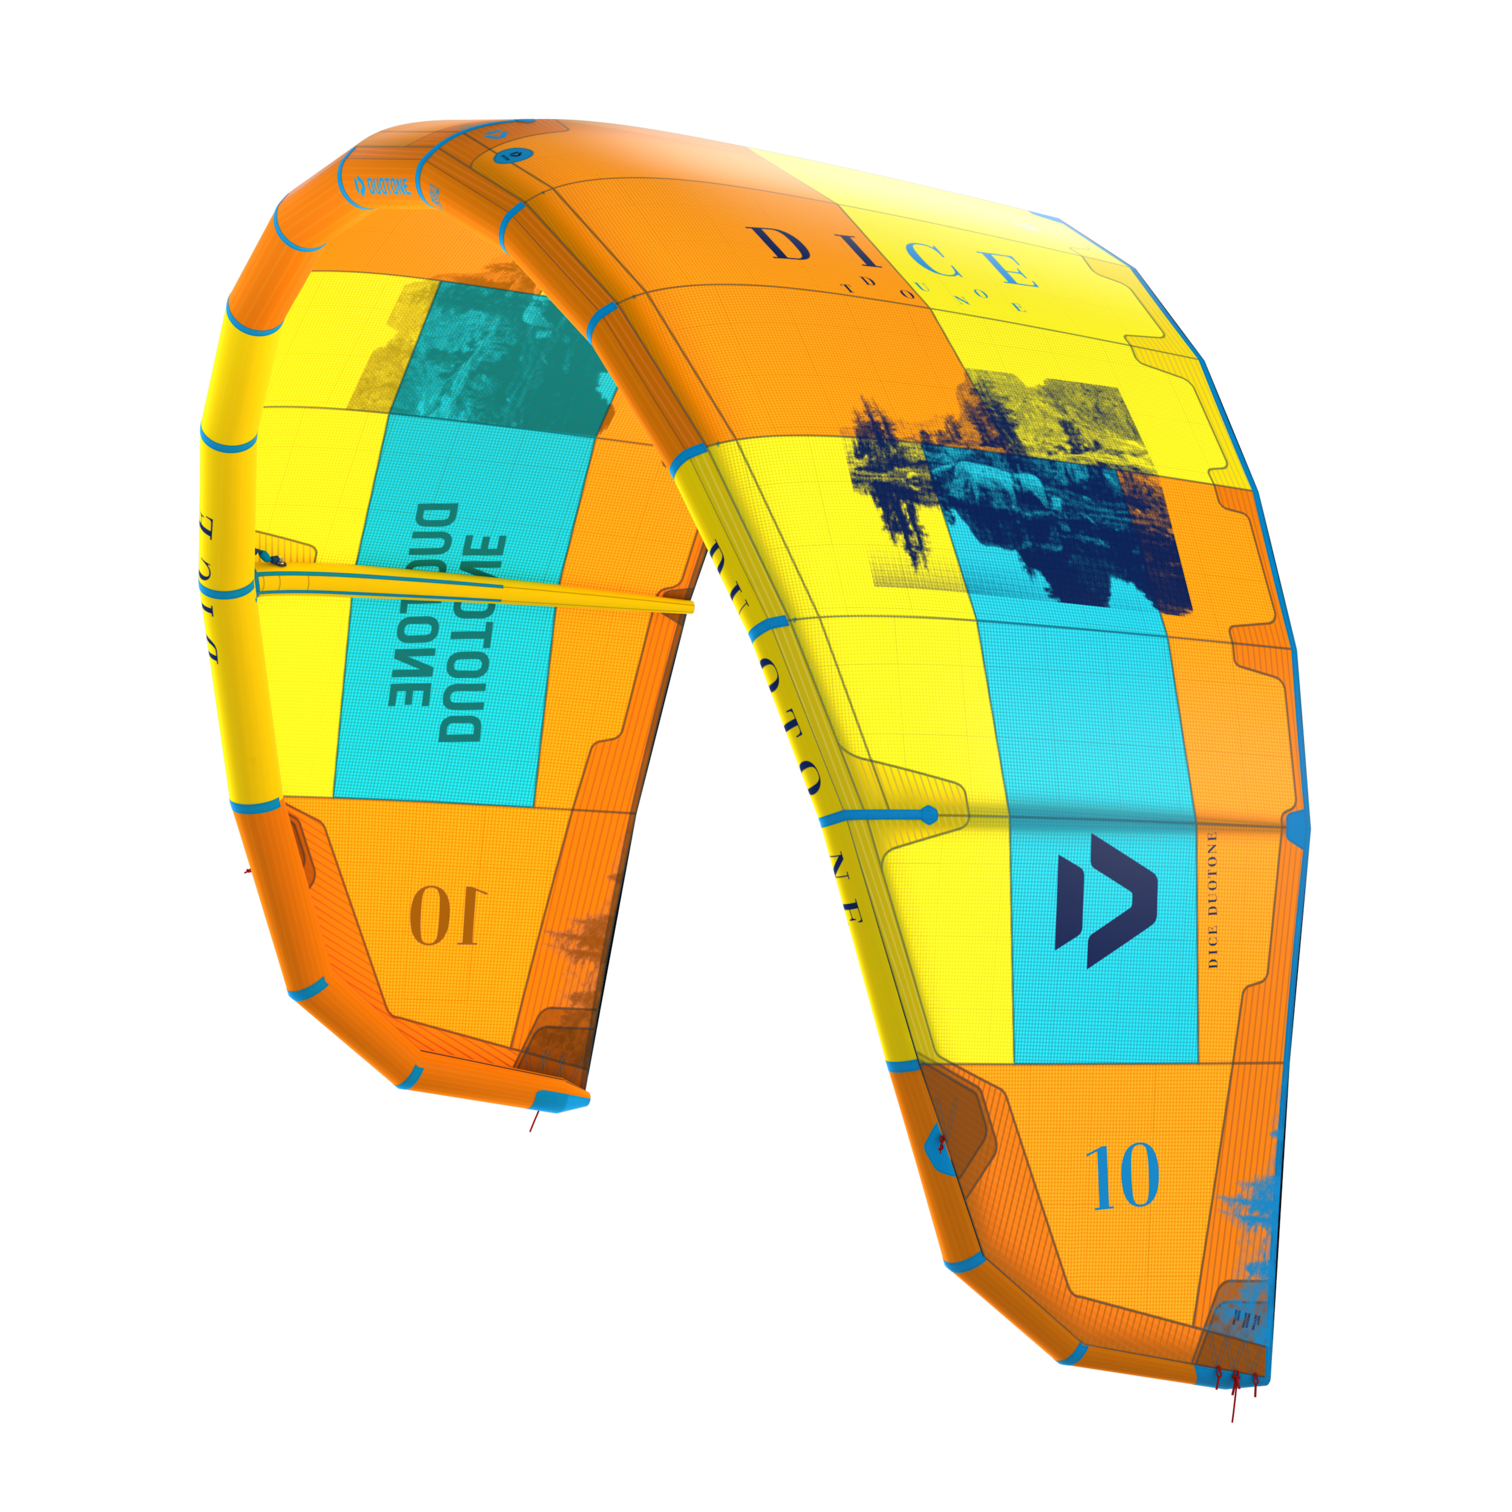 Duotone Dice 2019 - FREESTYLE / WAVEEqually at home busting out freestyle moves like Reno Romeu and surfing waves like the World Champion Matchu Lopes, the Dice is a versatile kite that is perfect for the riders who like to mix their disciplines.100 QAR per hour - 500 QAR day